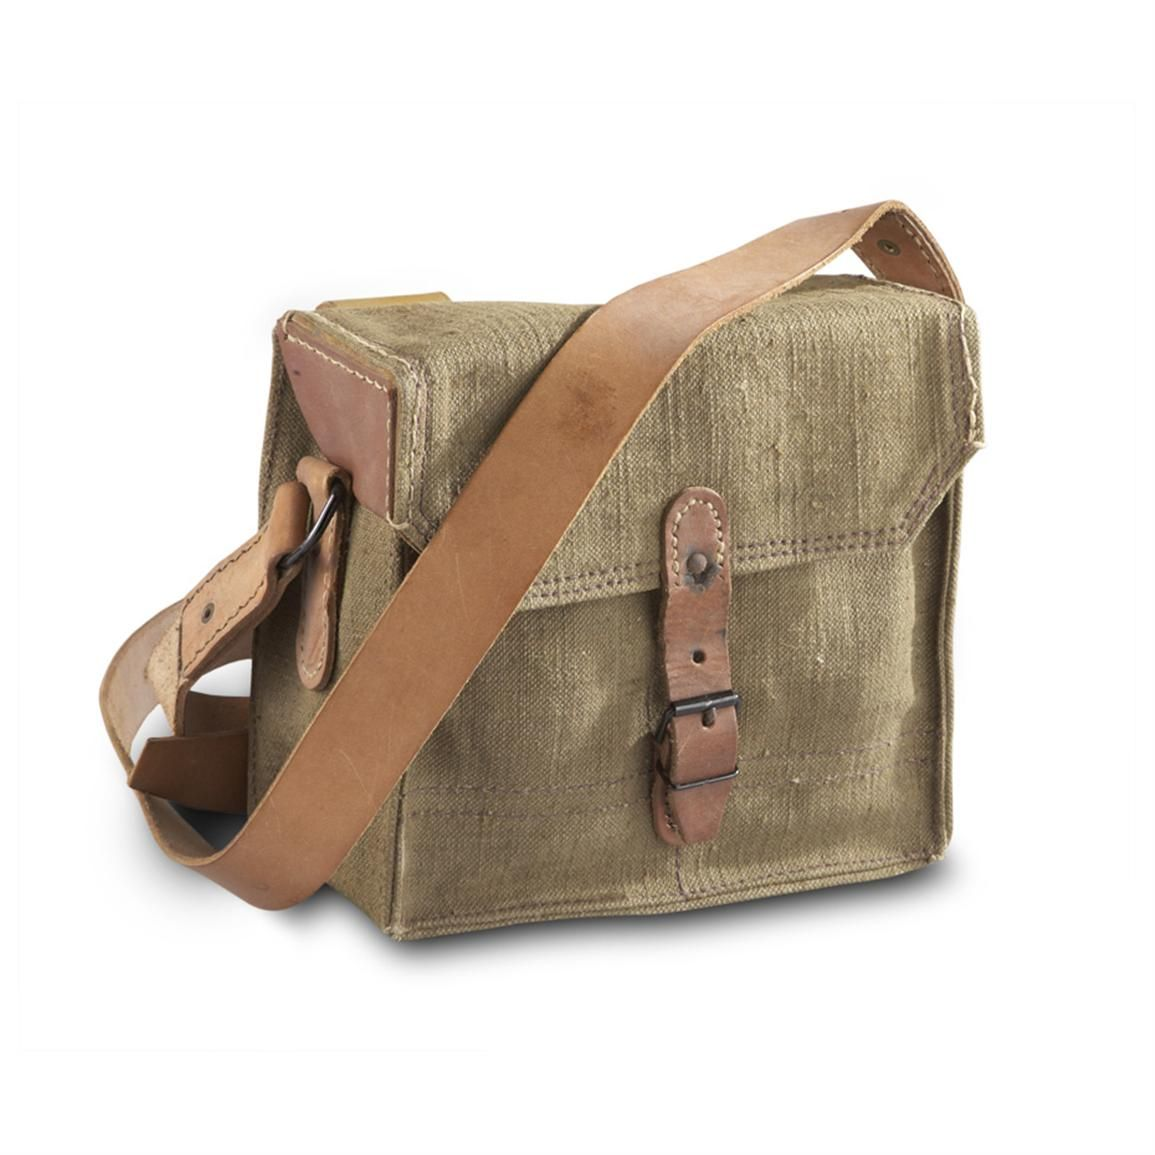 Used French Military Surplus Shoulder Bag Olive Drab 378 Cu In Capacity